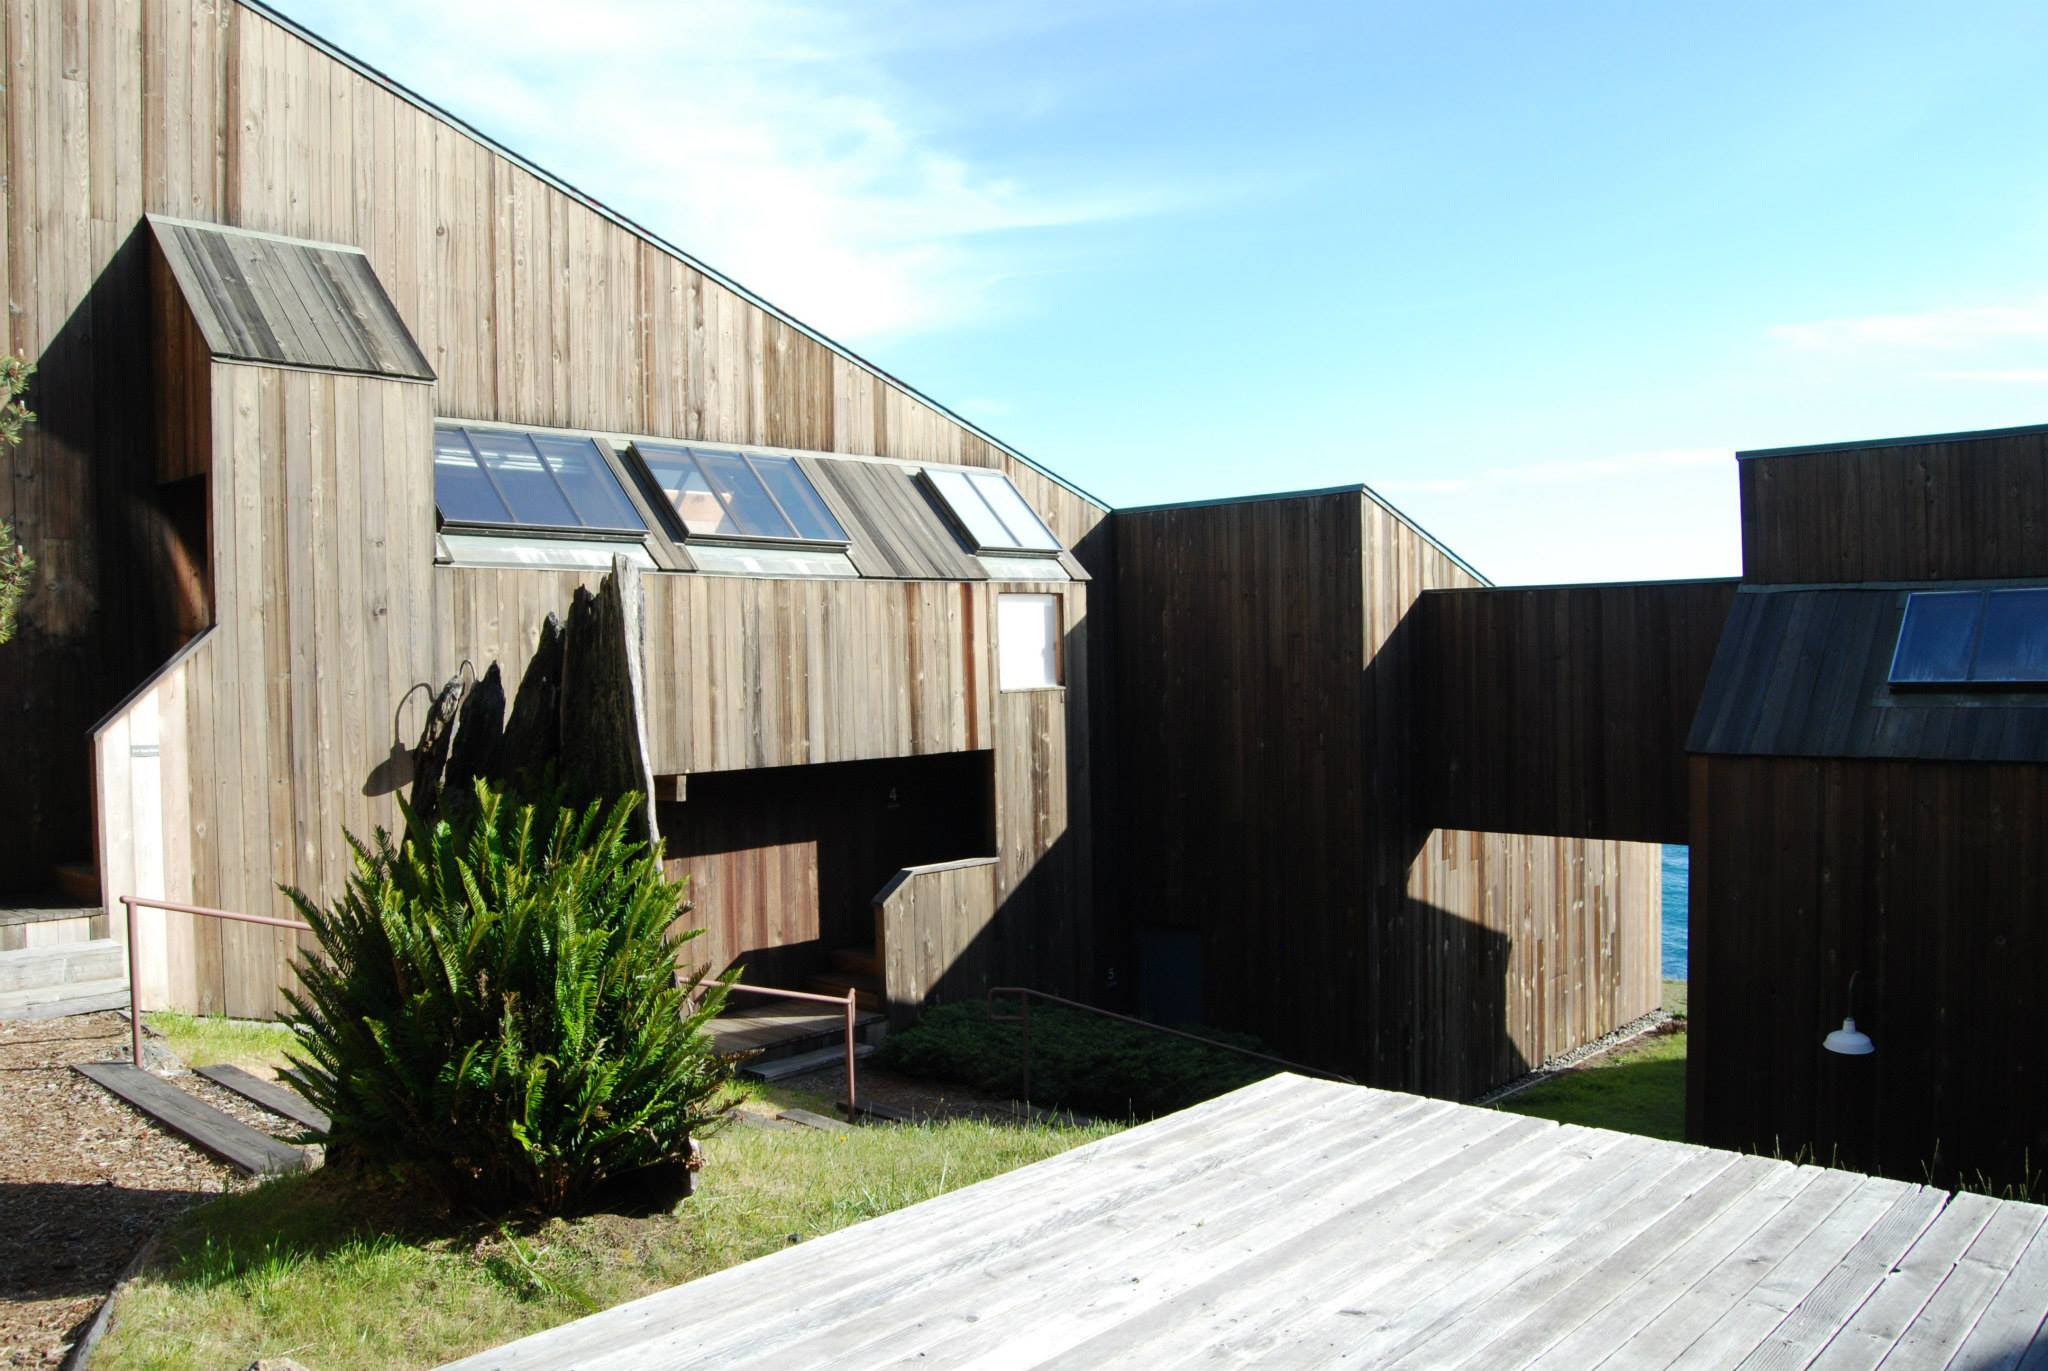 Photo of Sea Ranch buildings with brown weathered siding